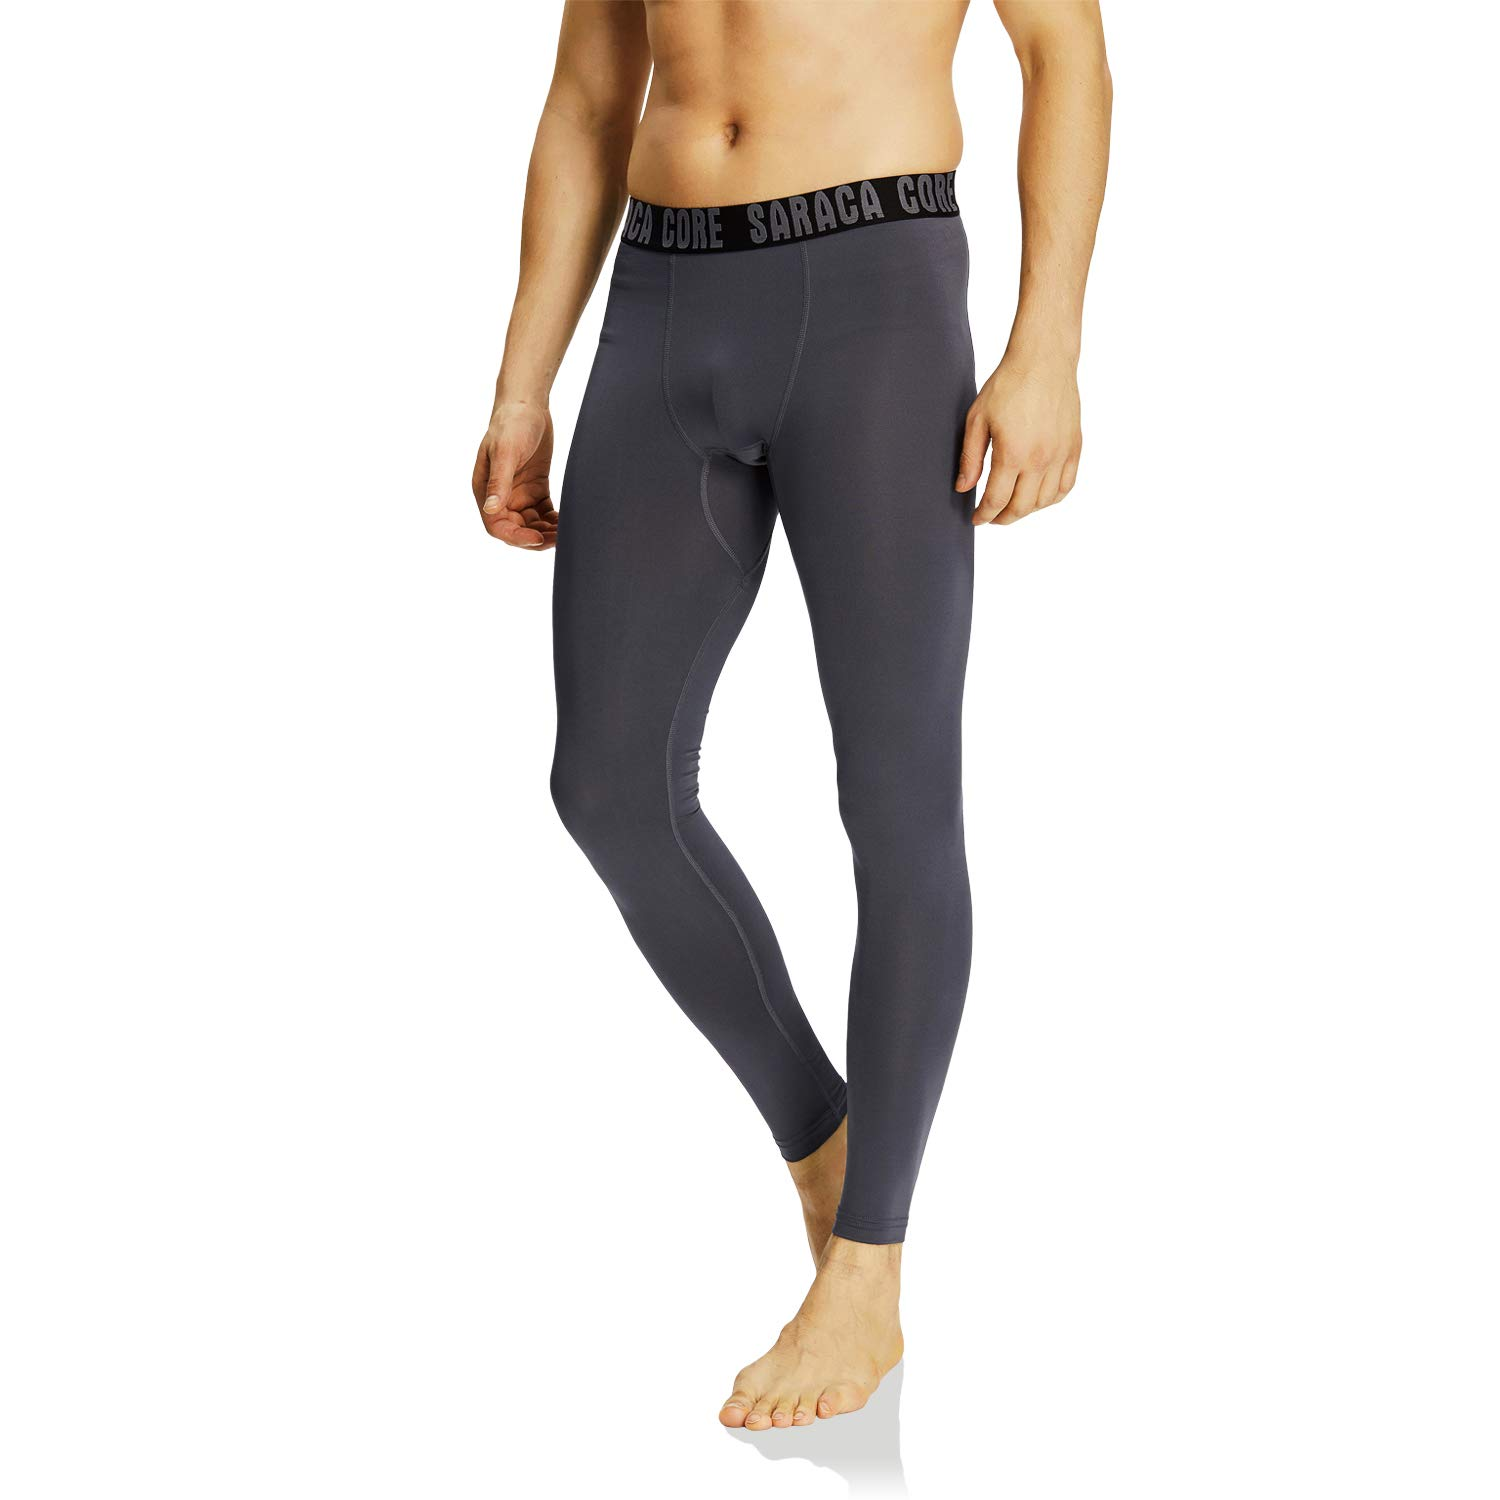 saraca core Men Youth Compression Pants Athletic Tights Running Leggings Baselayer Cool Dry by saraca core